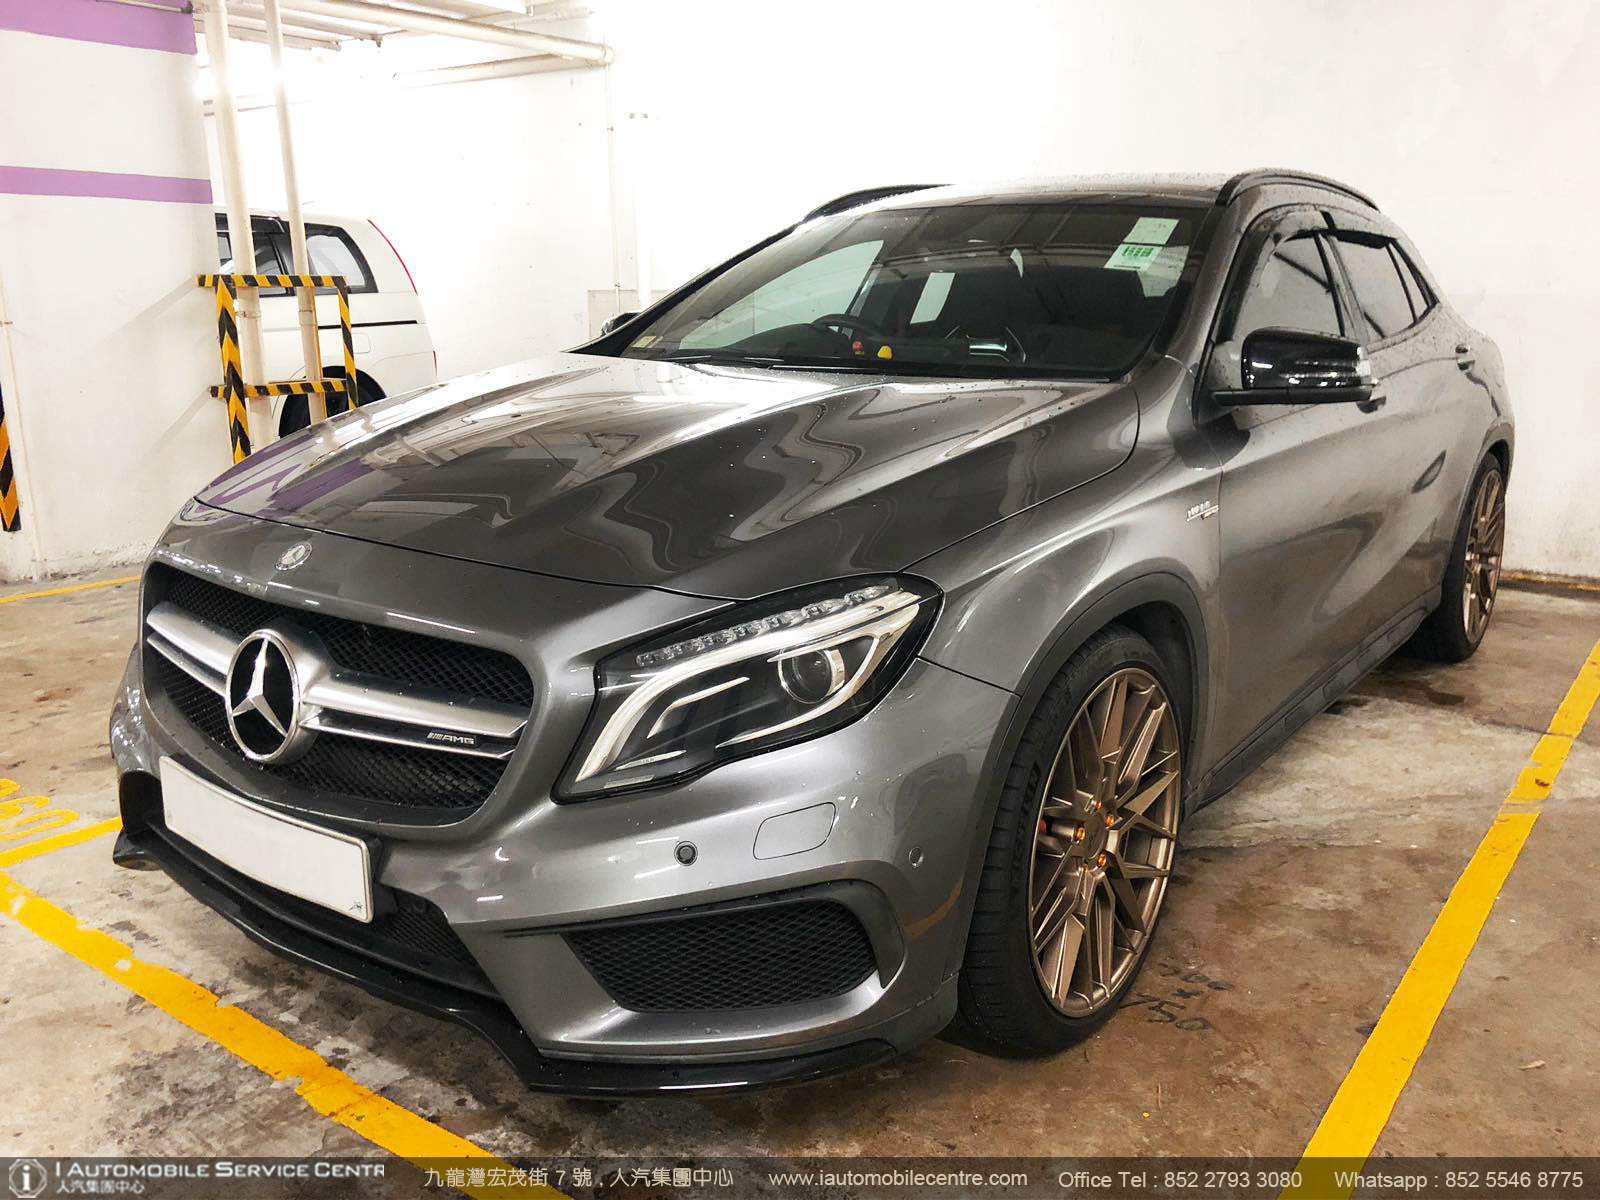 2014 Mercedes Benz GLA45